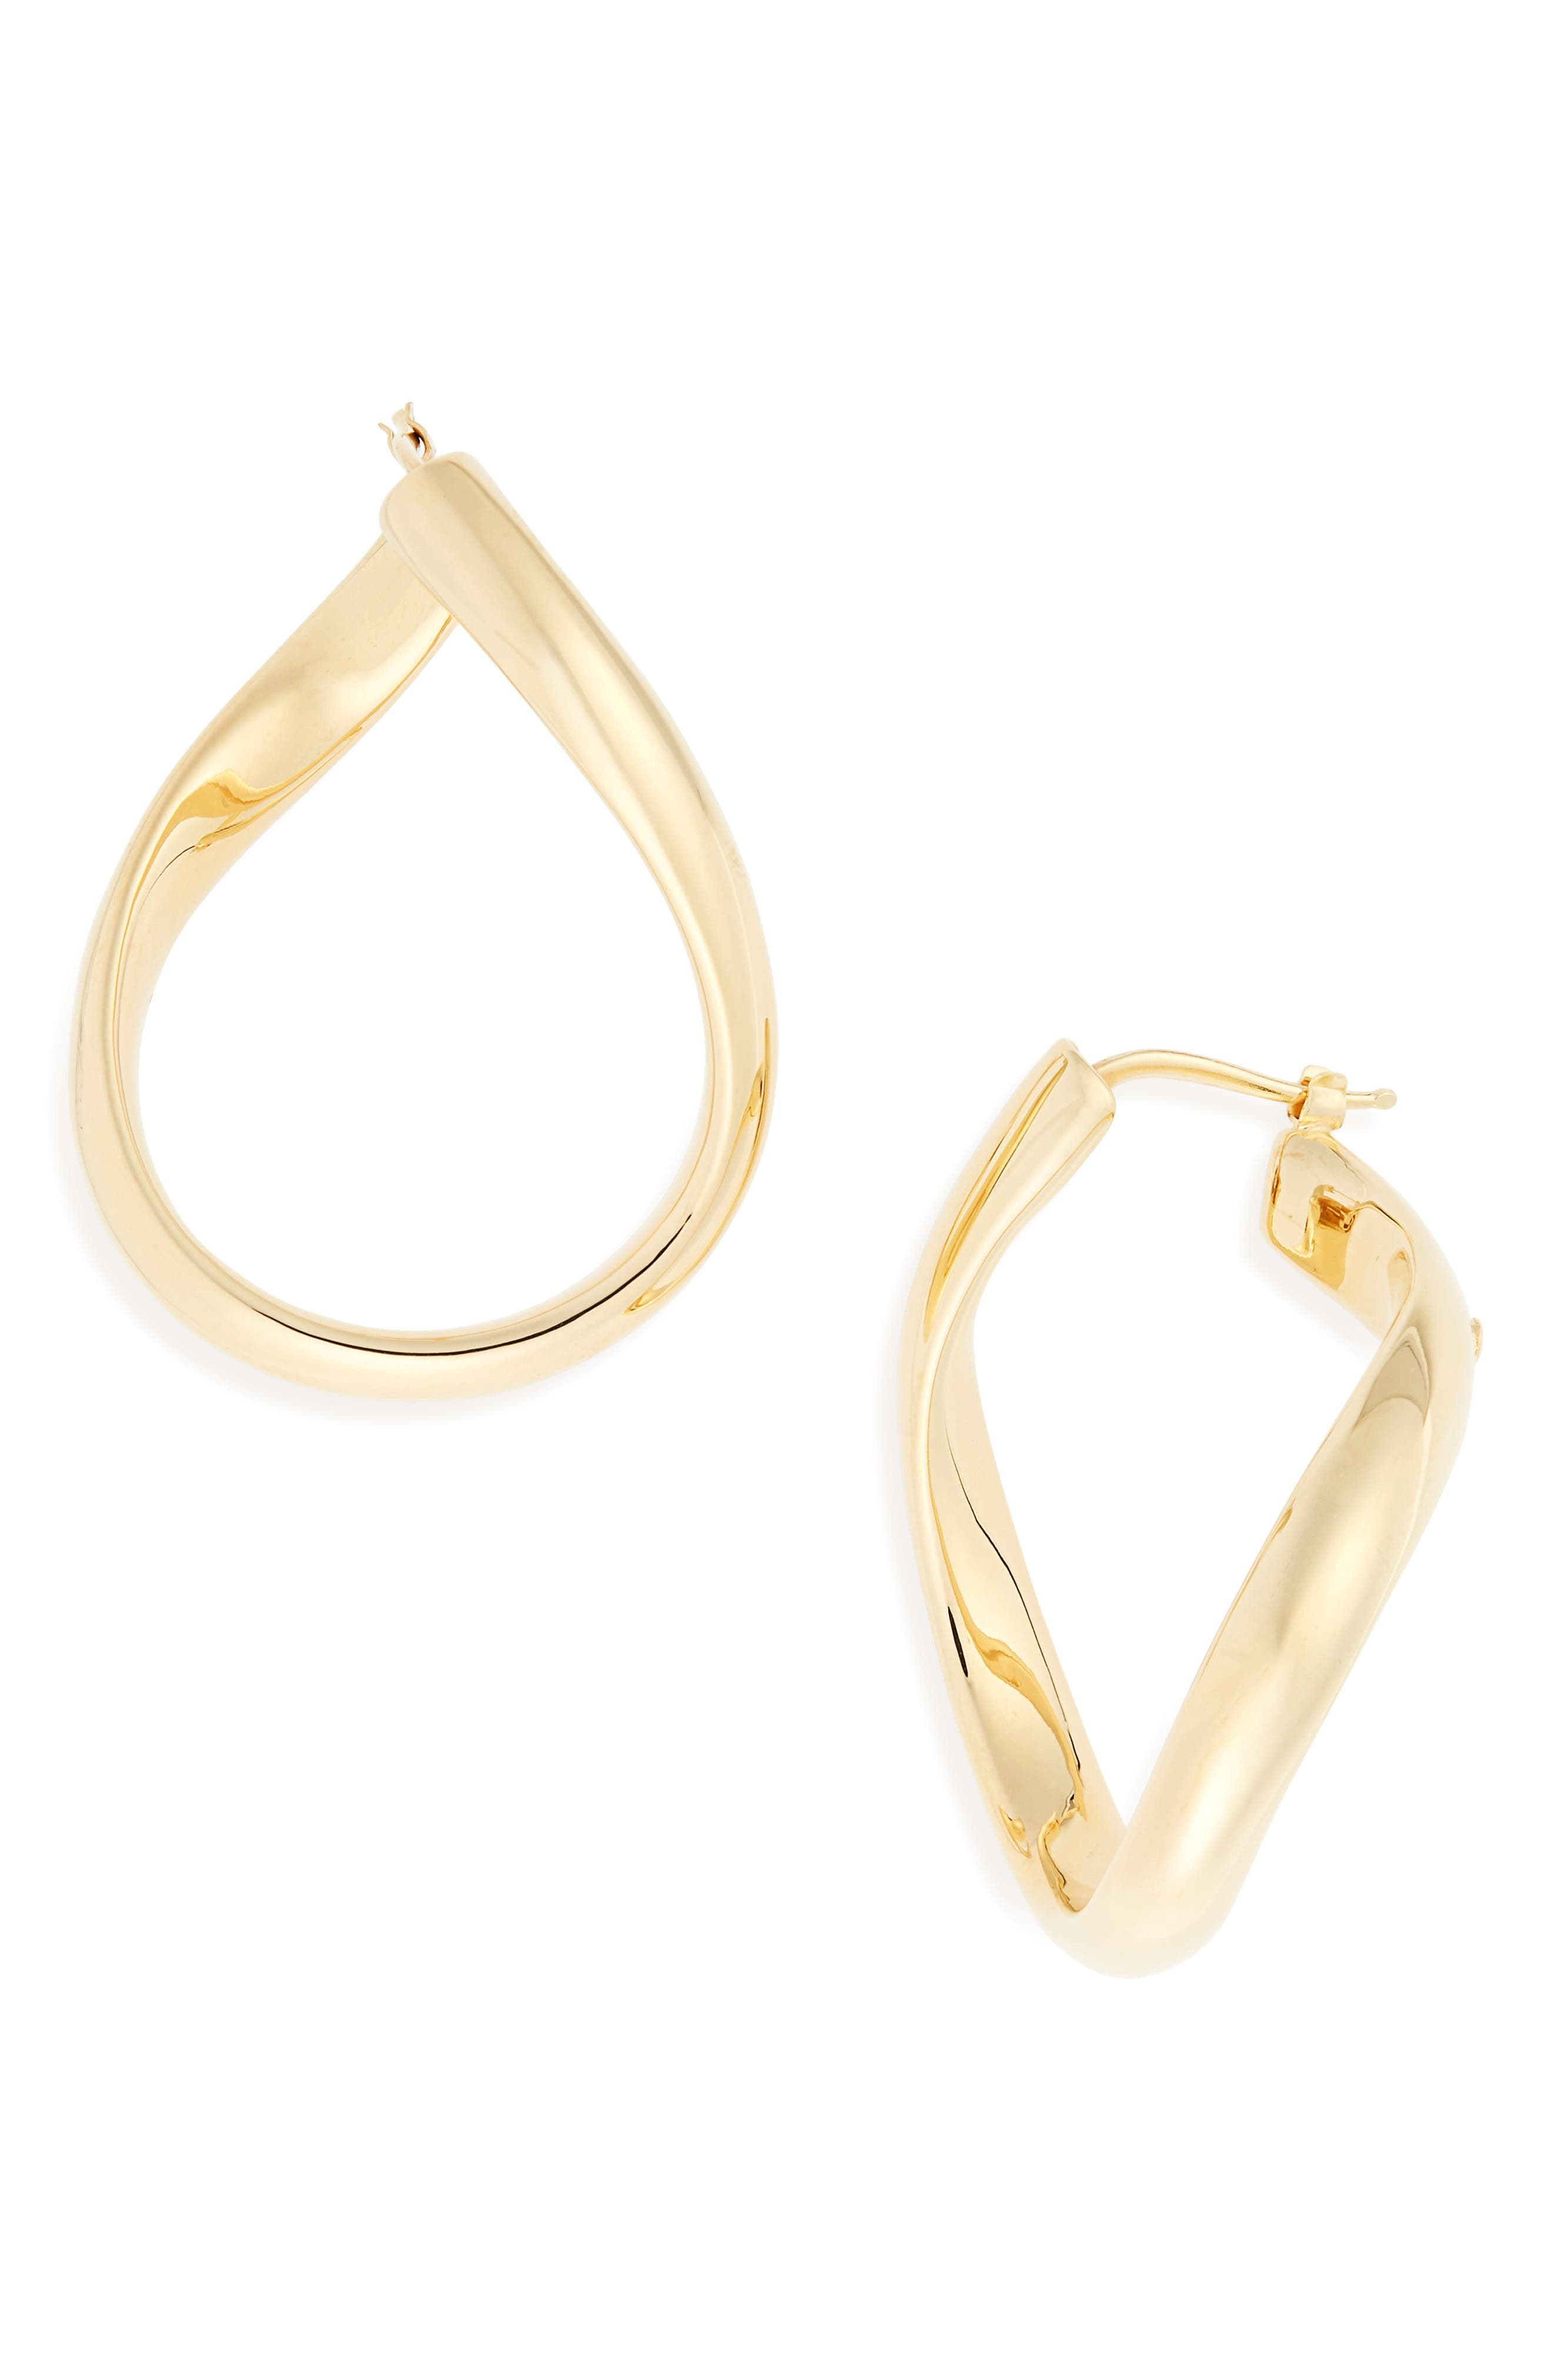 Classic Oro 18K Gold Hoop Earrings,                             Main thumbnail 1, color,                             YELLOW GOLD